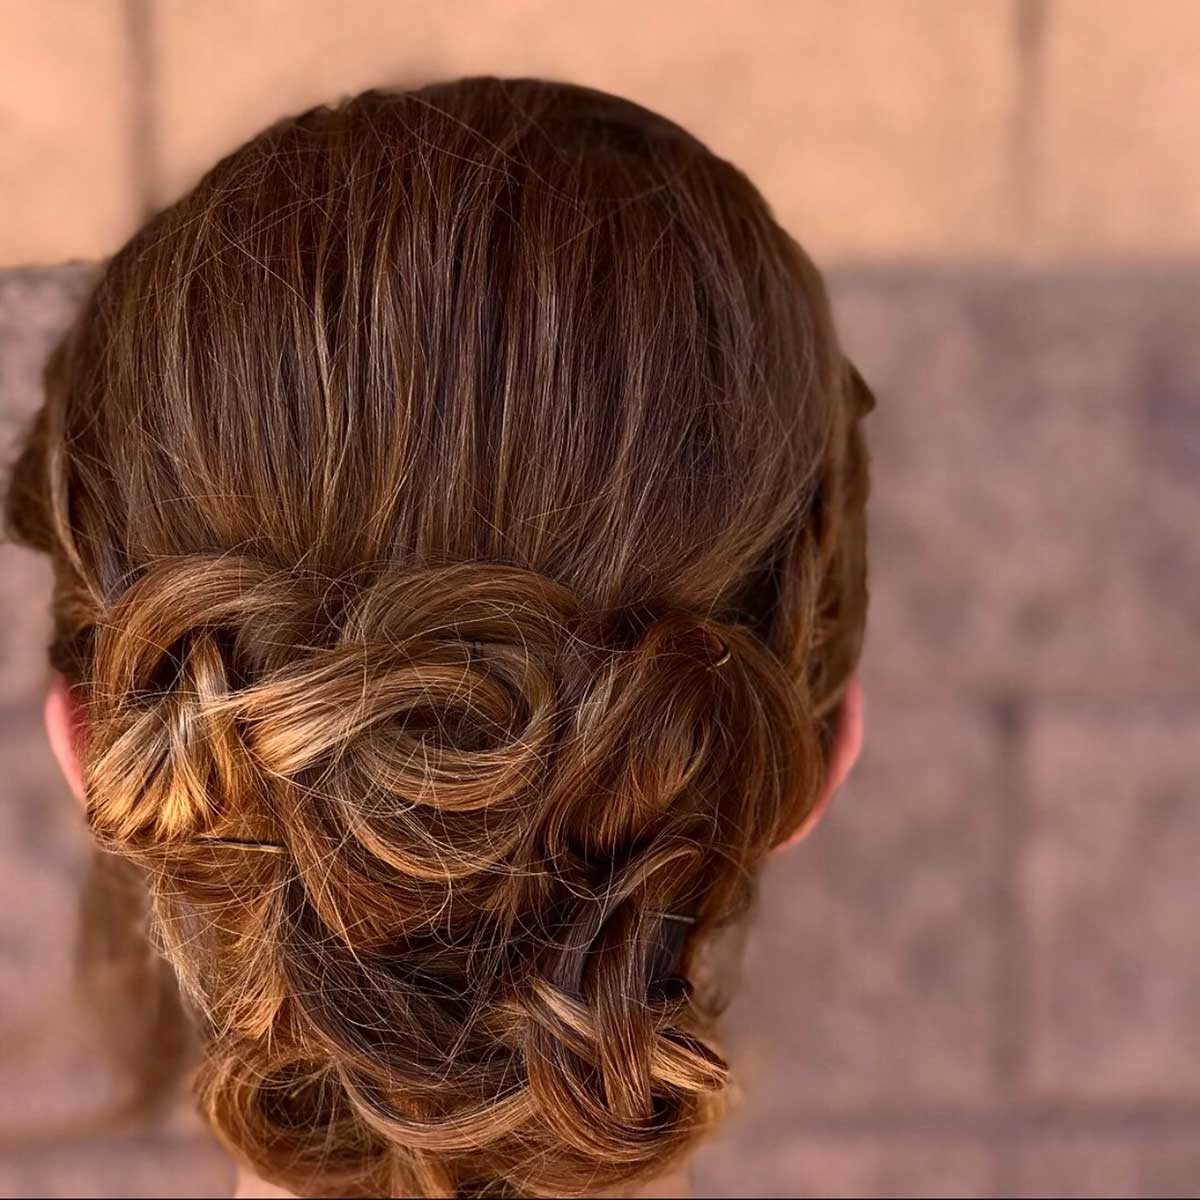 Updo by Karsyn Bigelow at Design Ramon Hair Studio